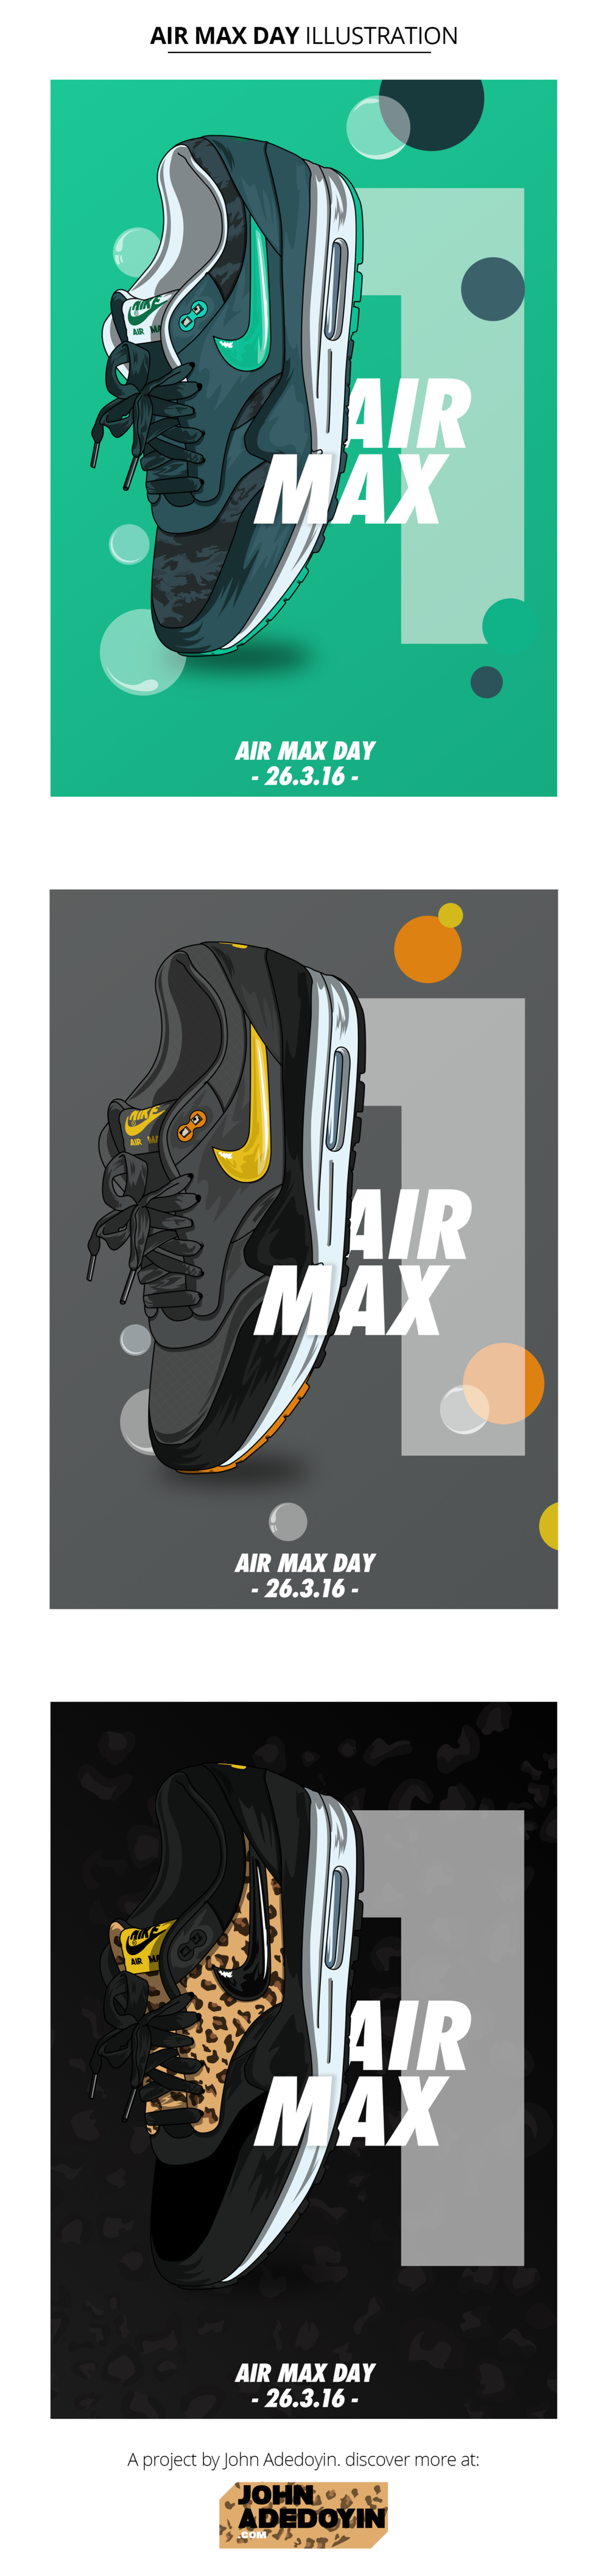 Nike Air Max Day Illustration